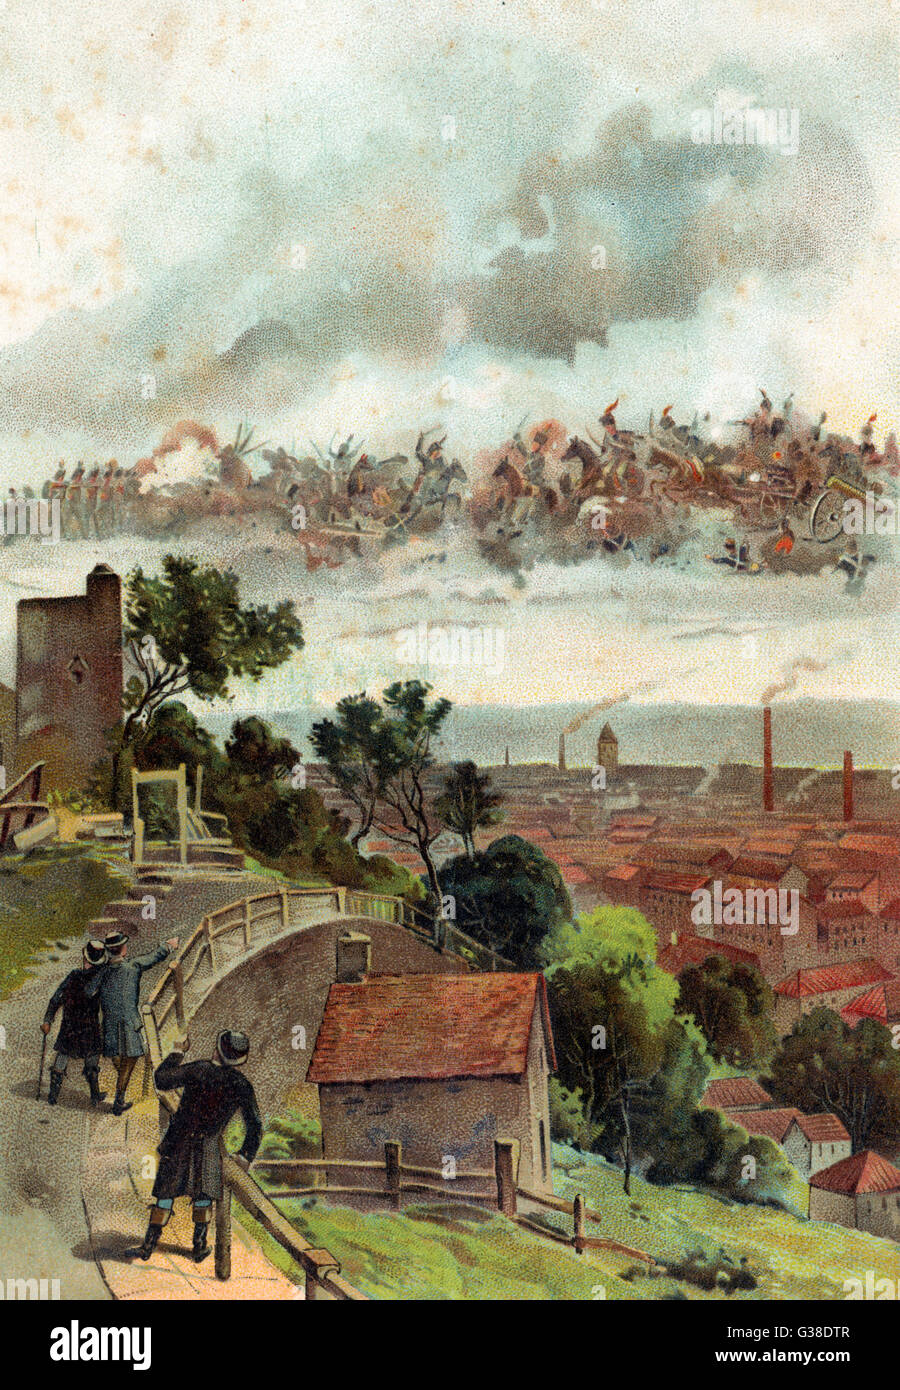 A VISION OF WATERLOO ? The inhabitants of Verviers, a  Belgian town not too far from  Waterloo, see a battle in - Stock Image